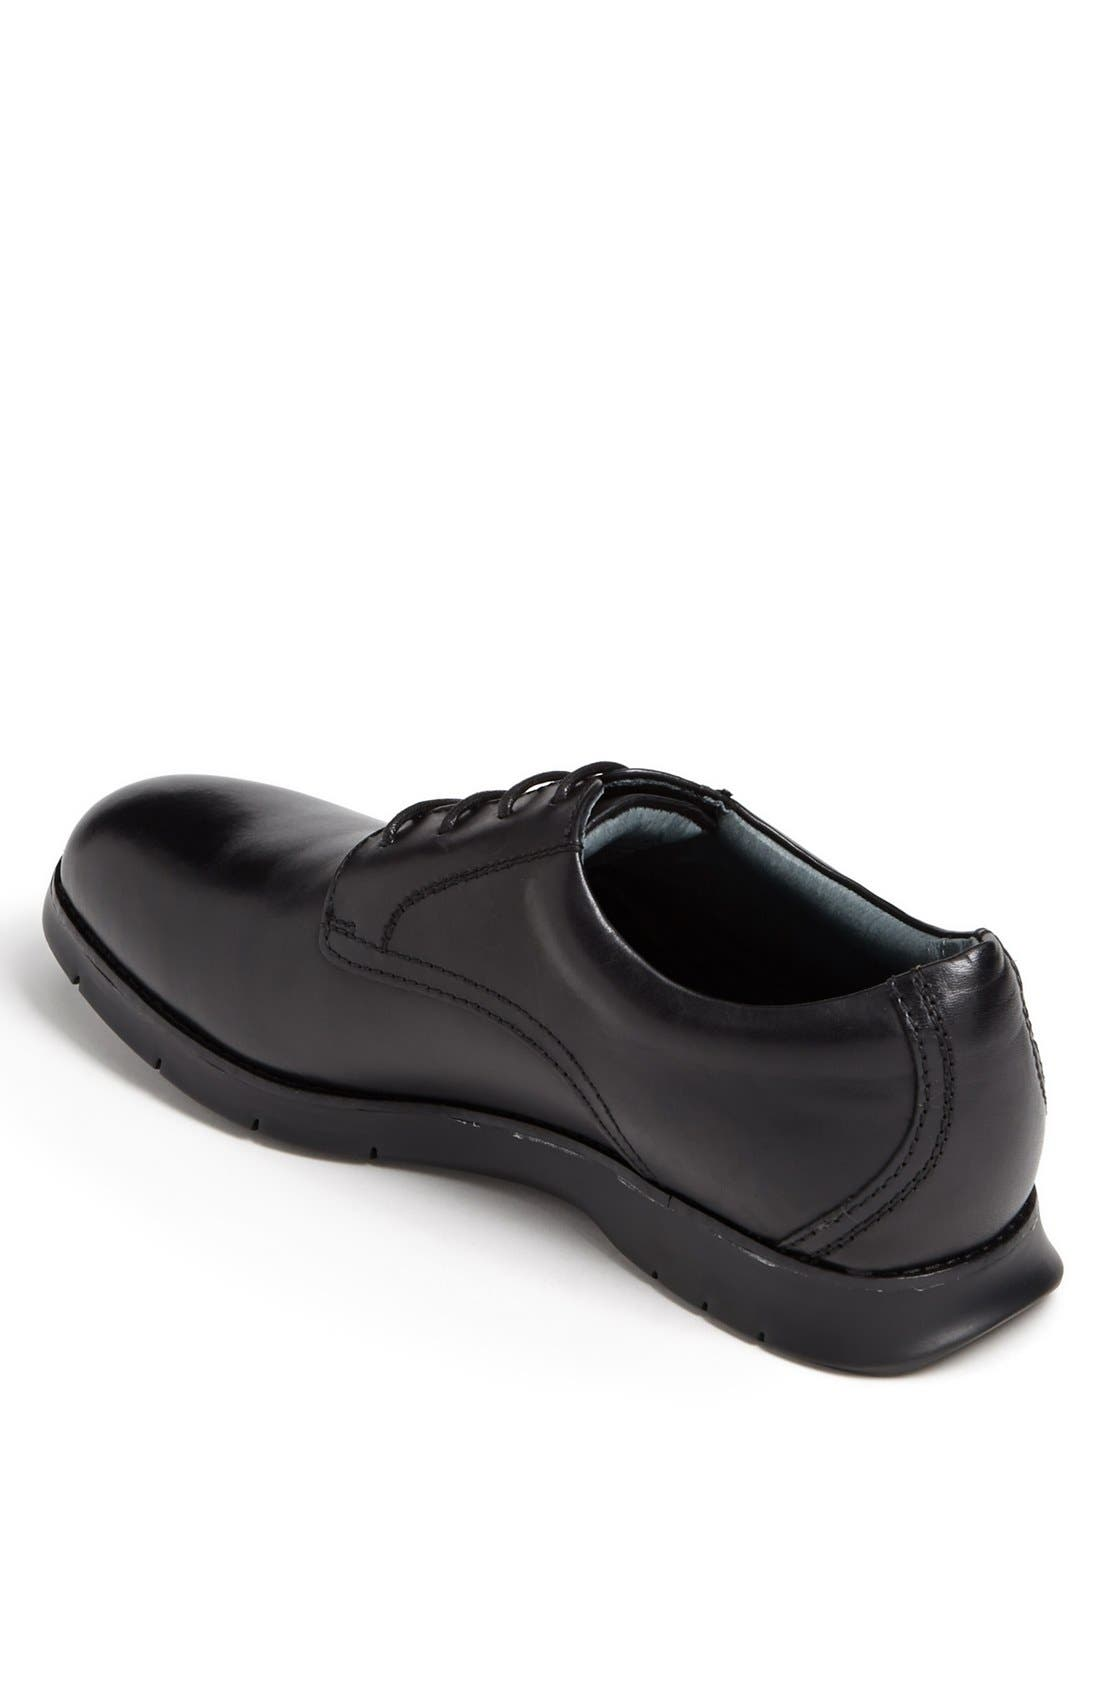 Alternate Image 2  - Florsheim 'Flites' Plain Toe Derby